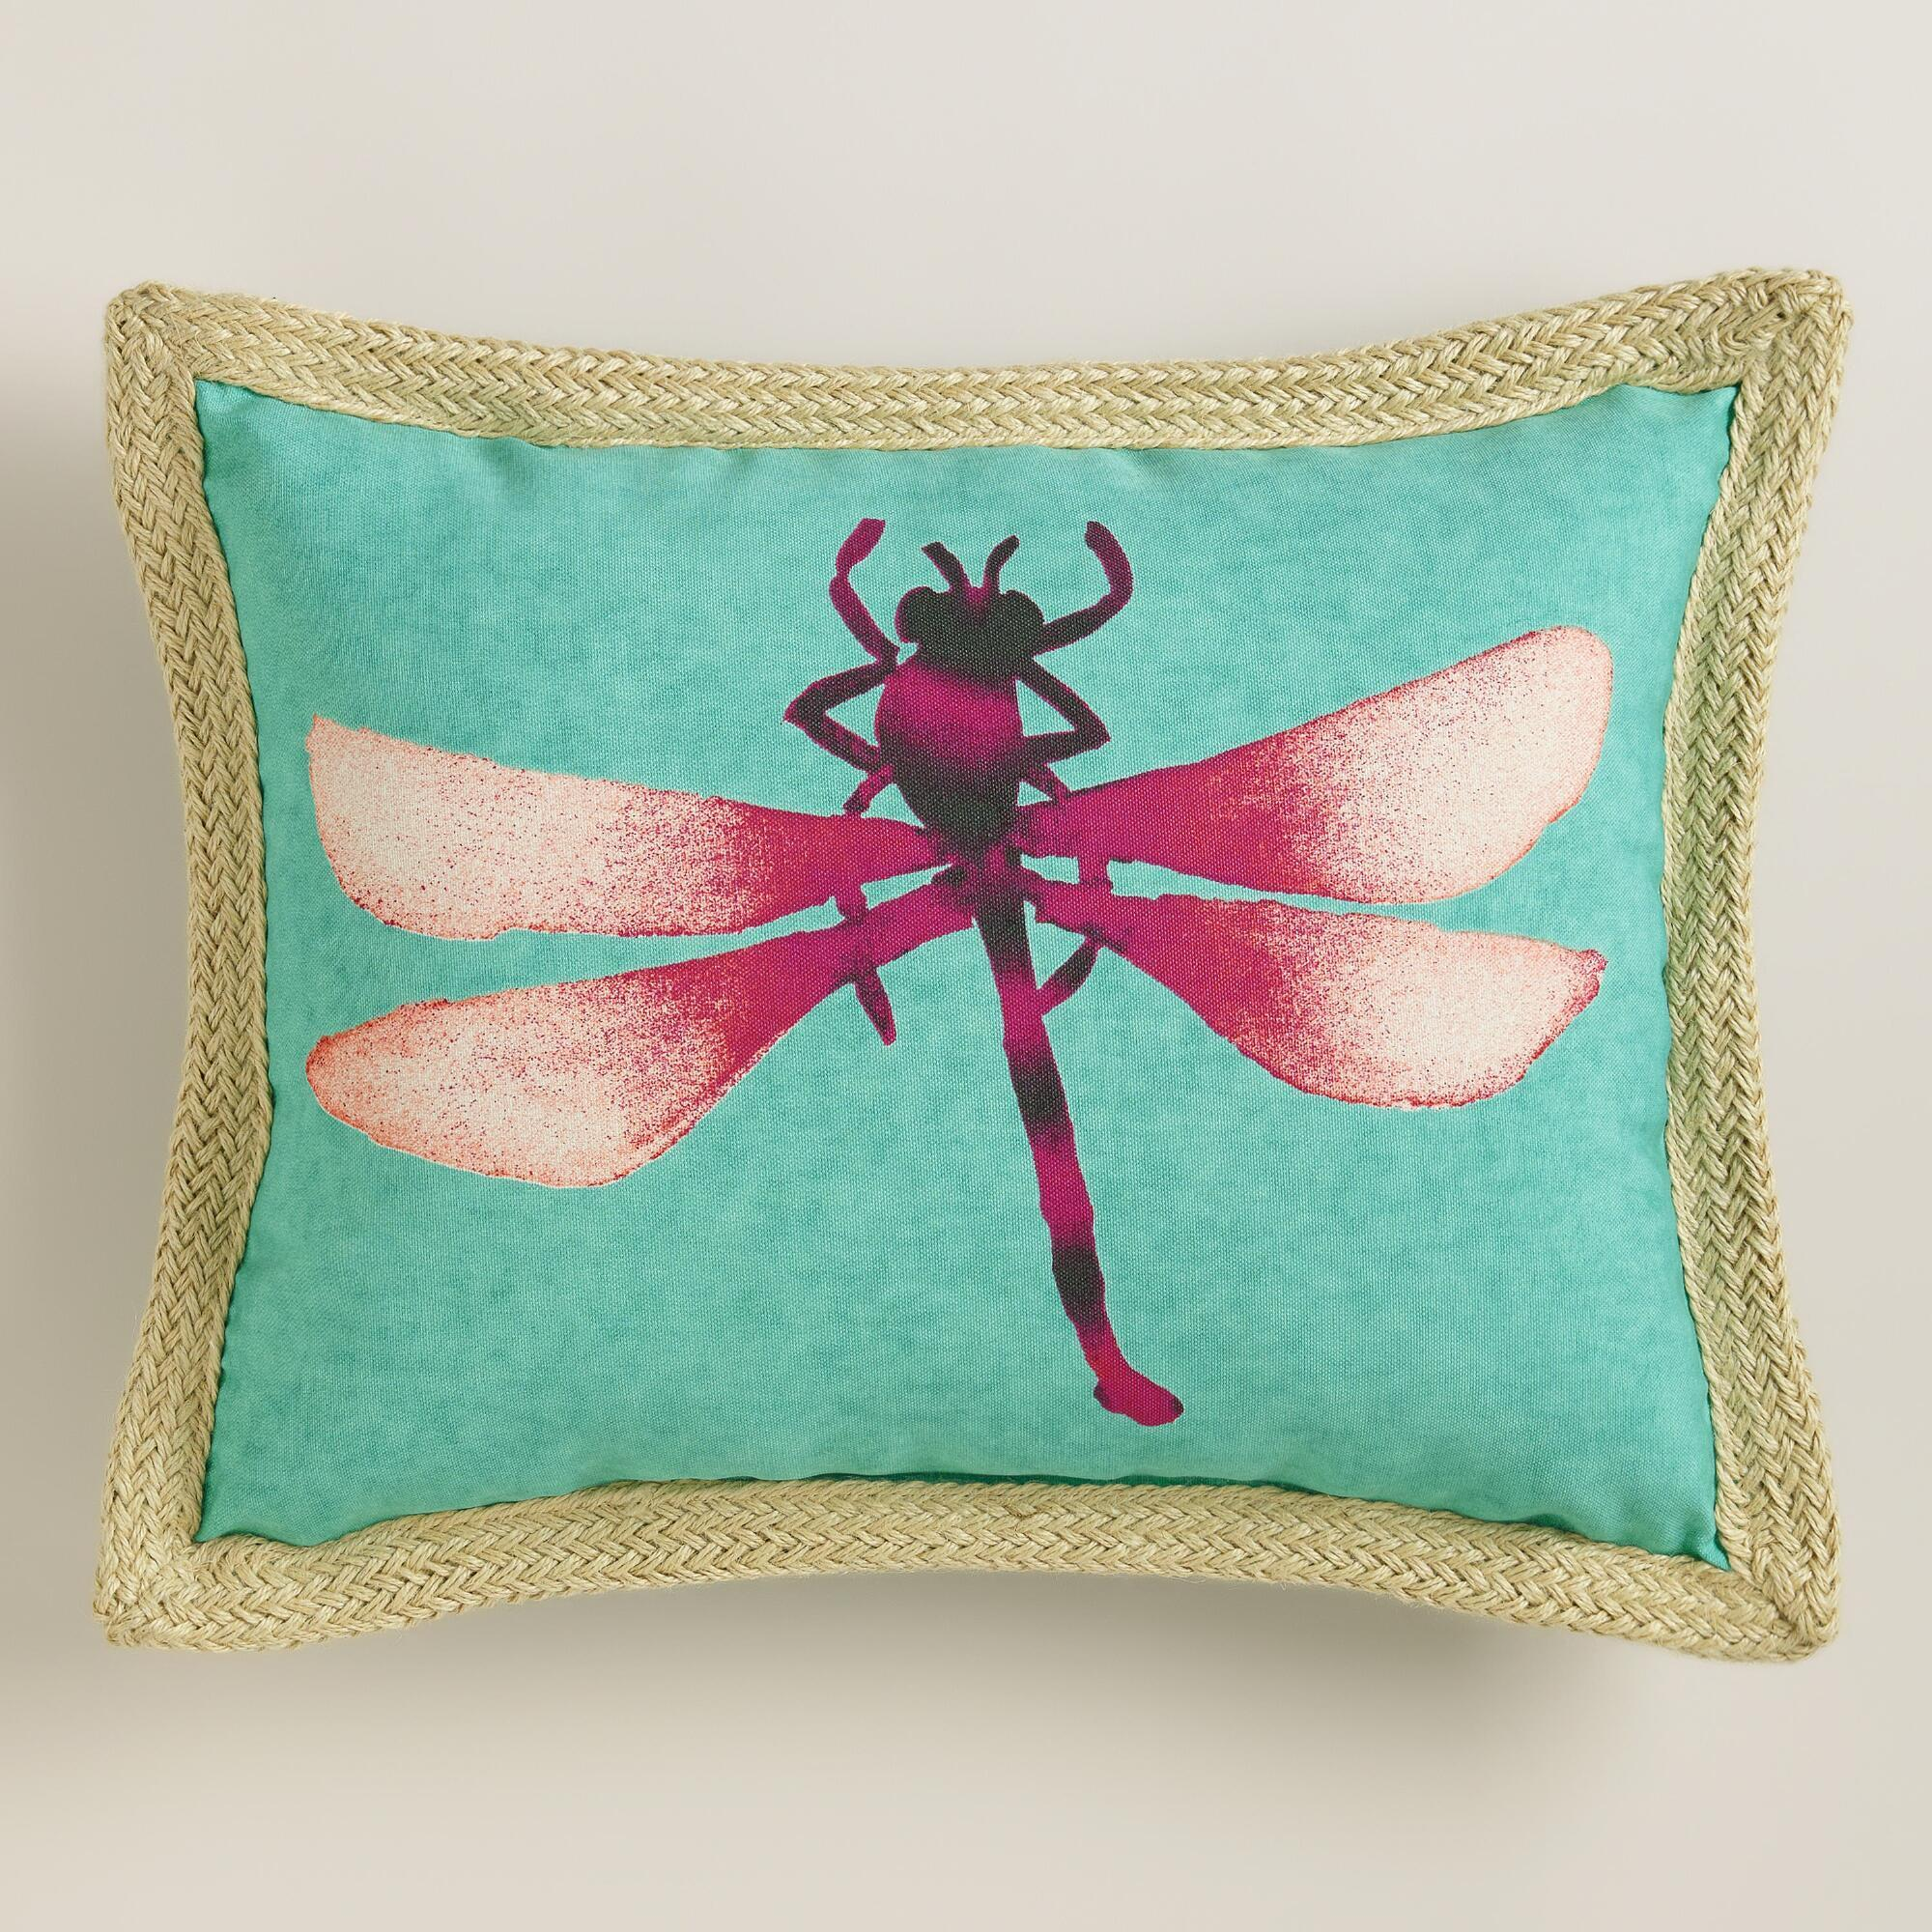 Dragonfly Outdoor Lumbar Pillow From Cost Plus World Market